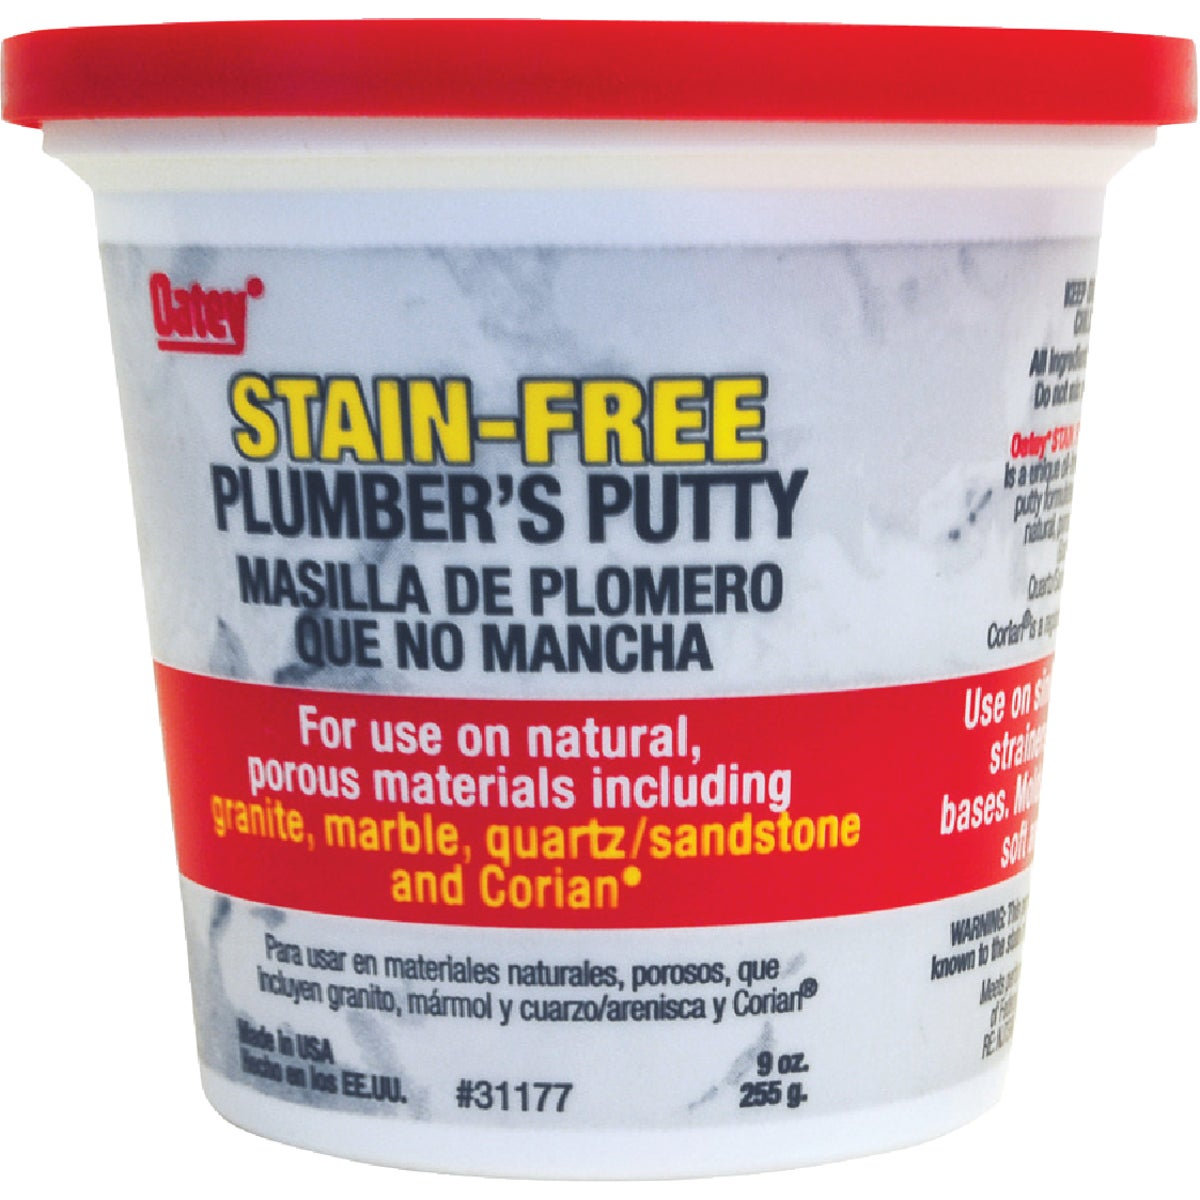 OIL-FREE PLUMBERS PUTTY